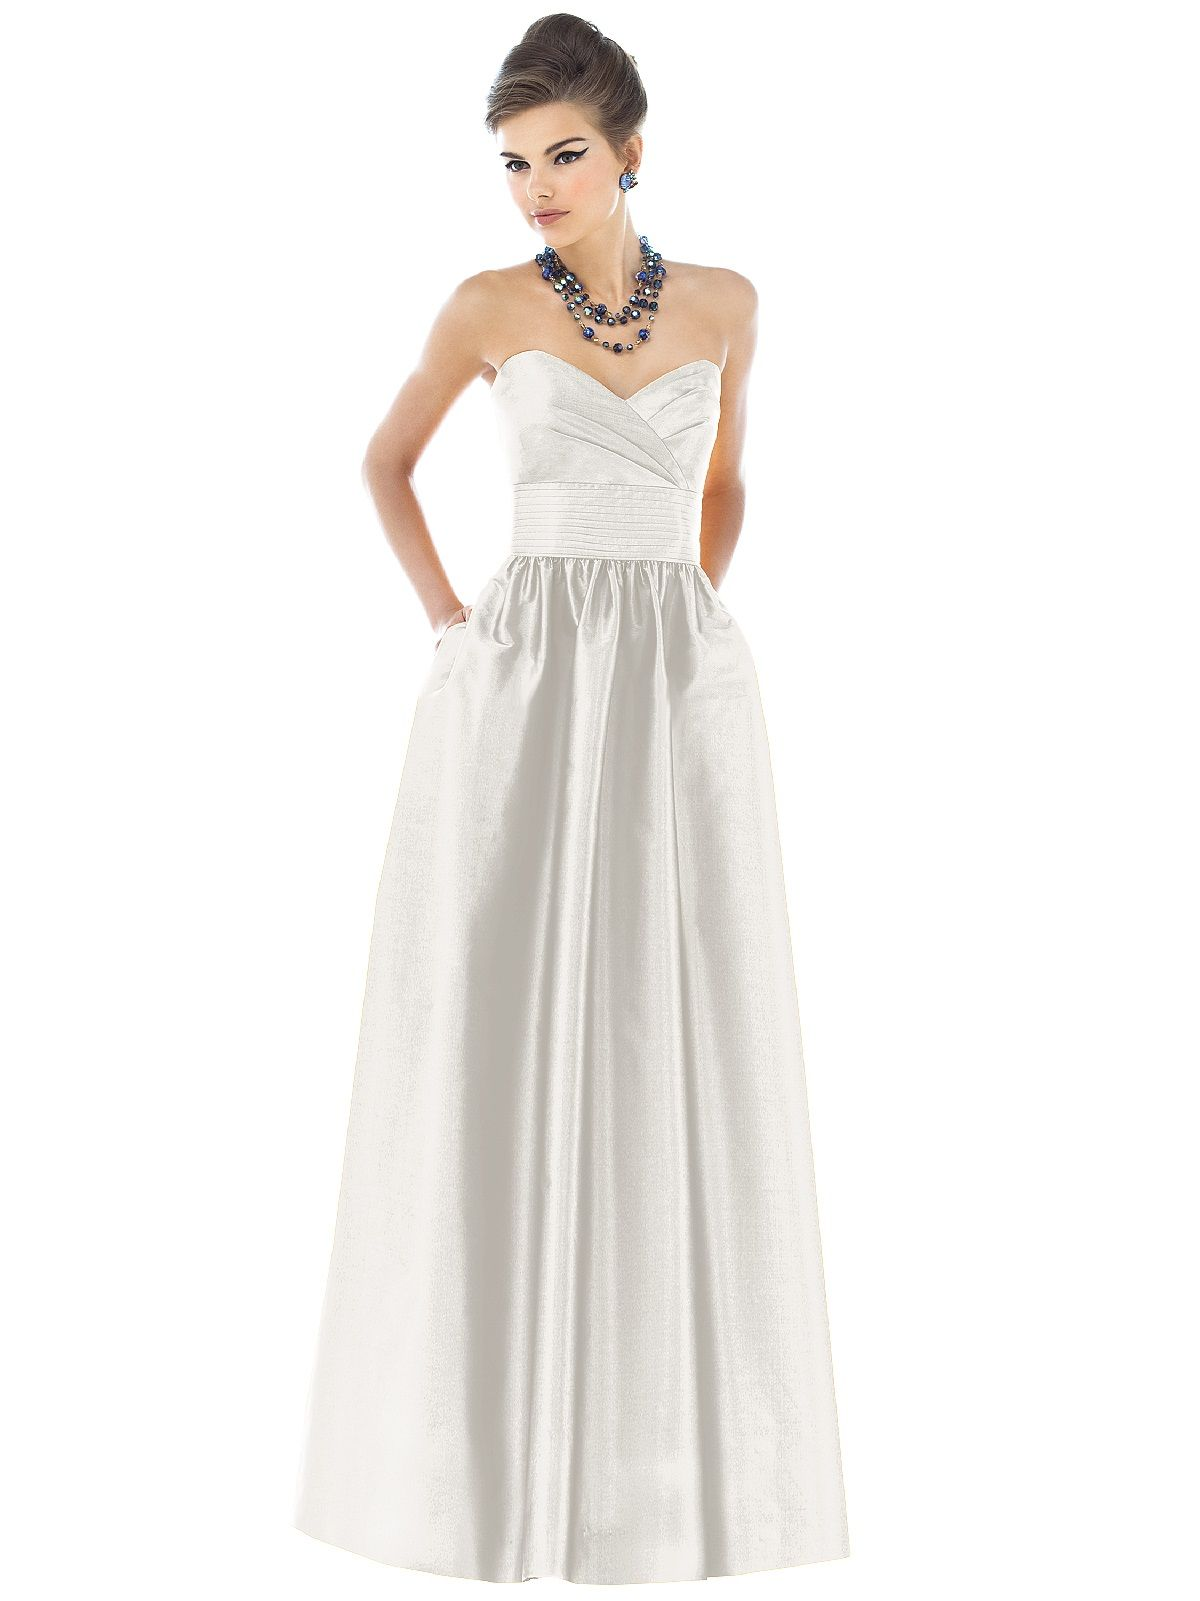 Alfred sung style d543 httpdessydressesbridesmaid the alfred sung bridesmaid collection offers fresh contemporary bridesmaid dresses while keeping your budget in mind ombrellifo Choice Image